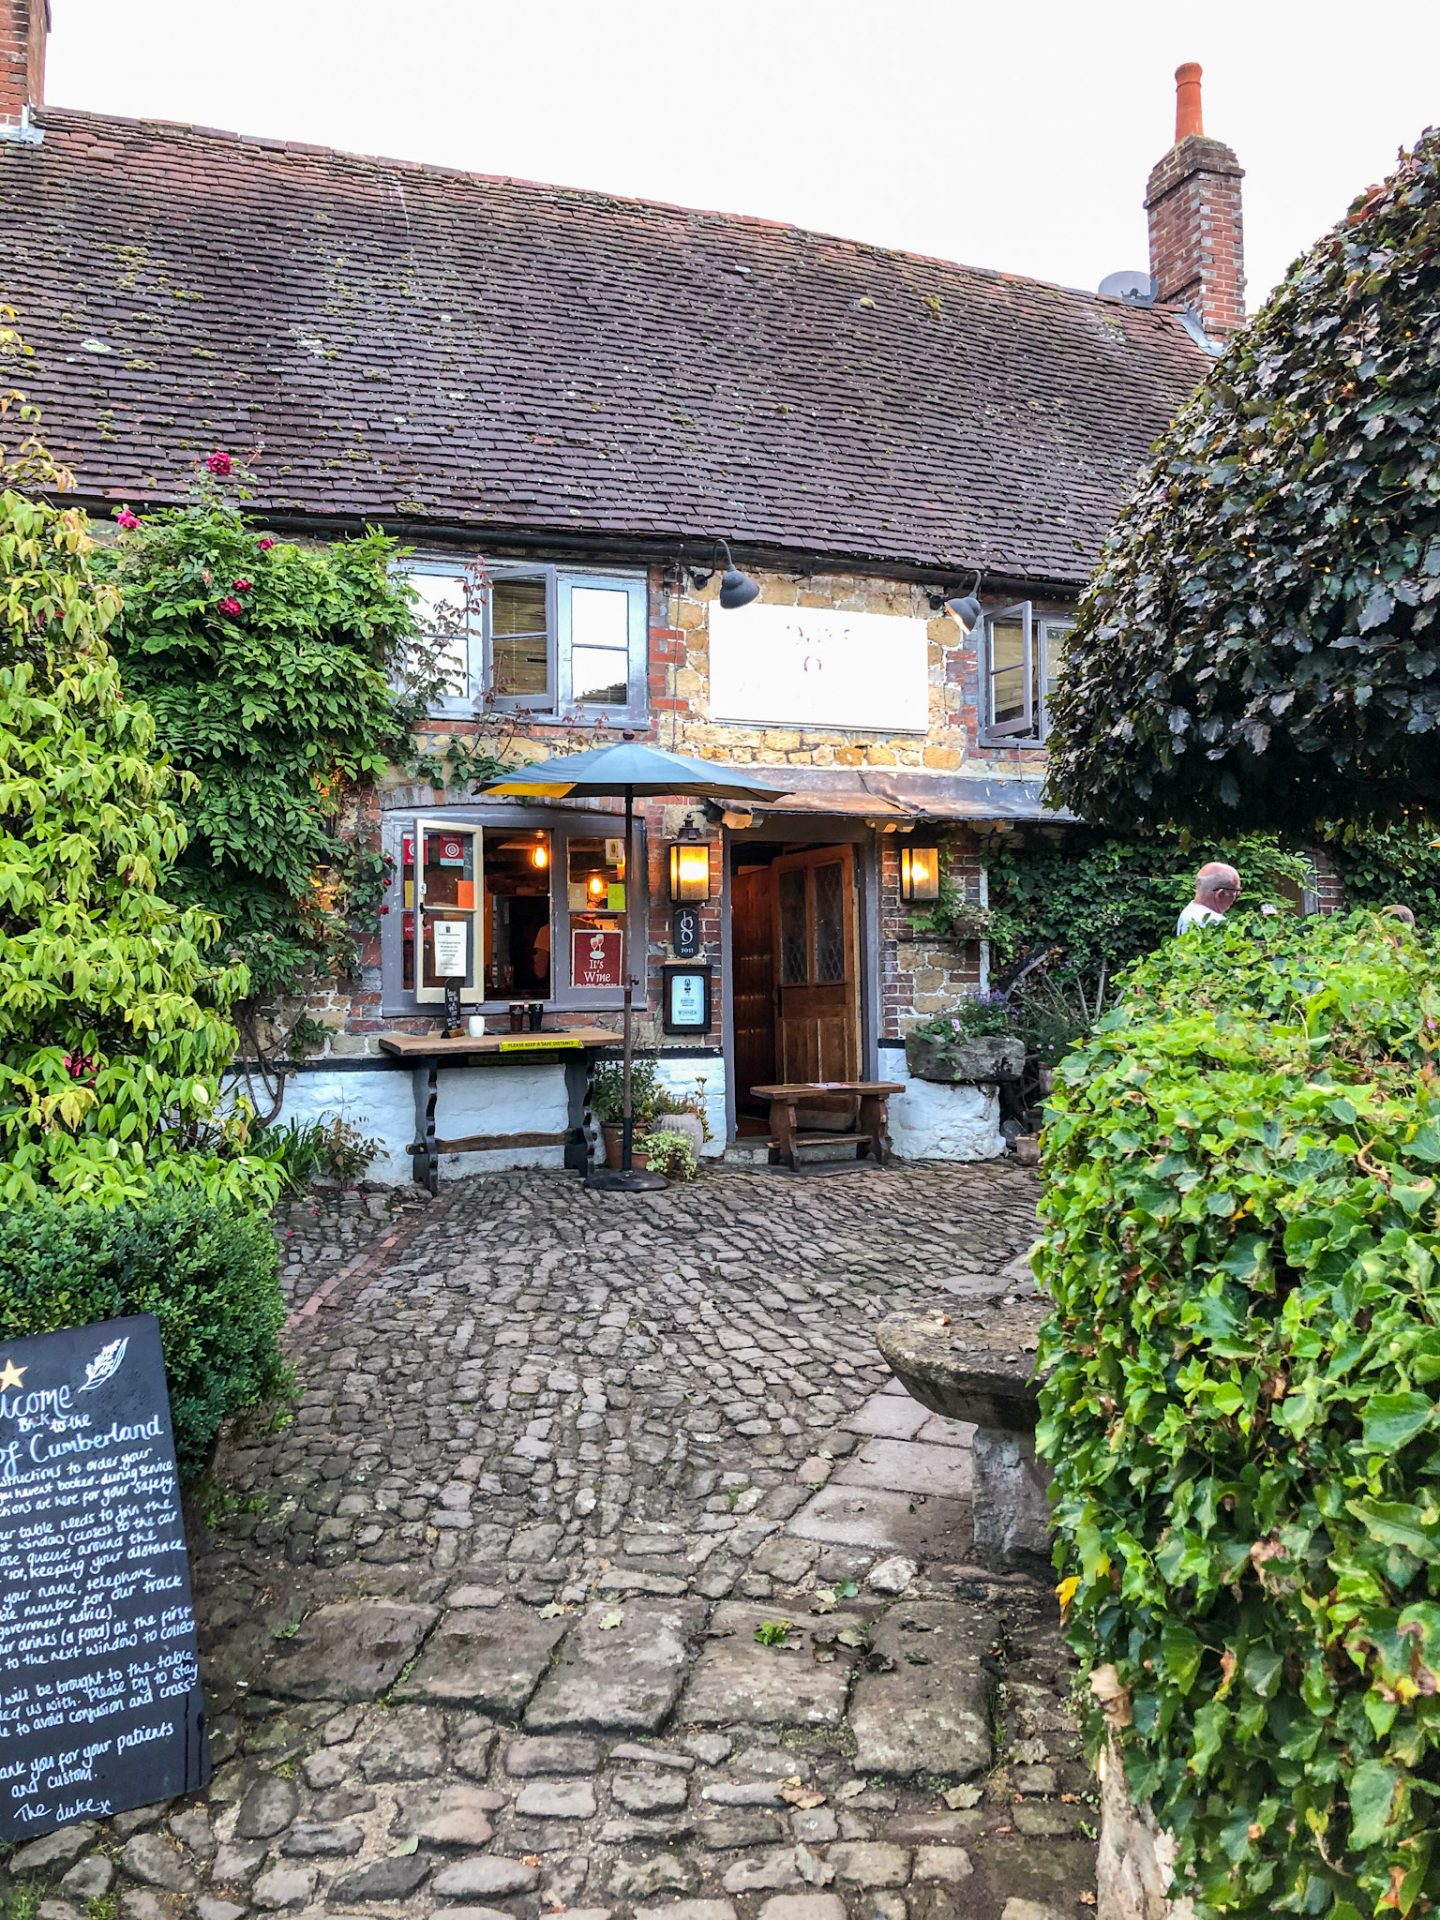 The Duke of Cumberland Pub in the South Downs